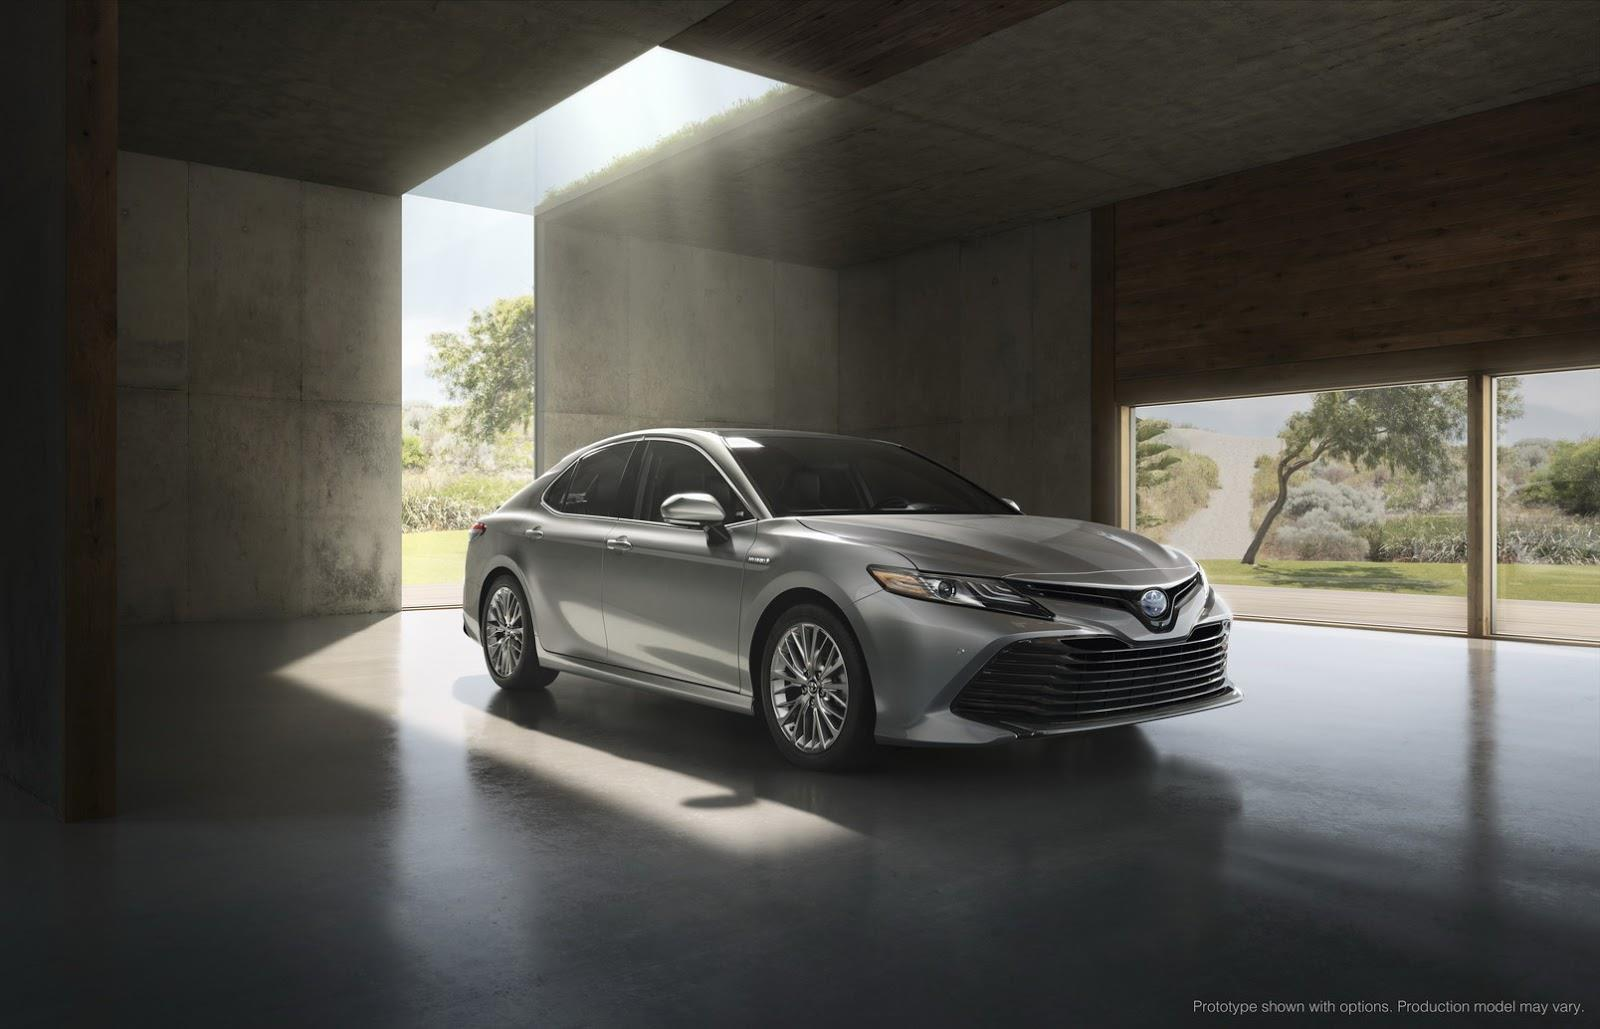 2017 Toyota Camry image gallery